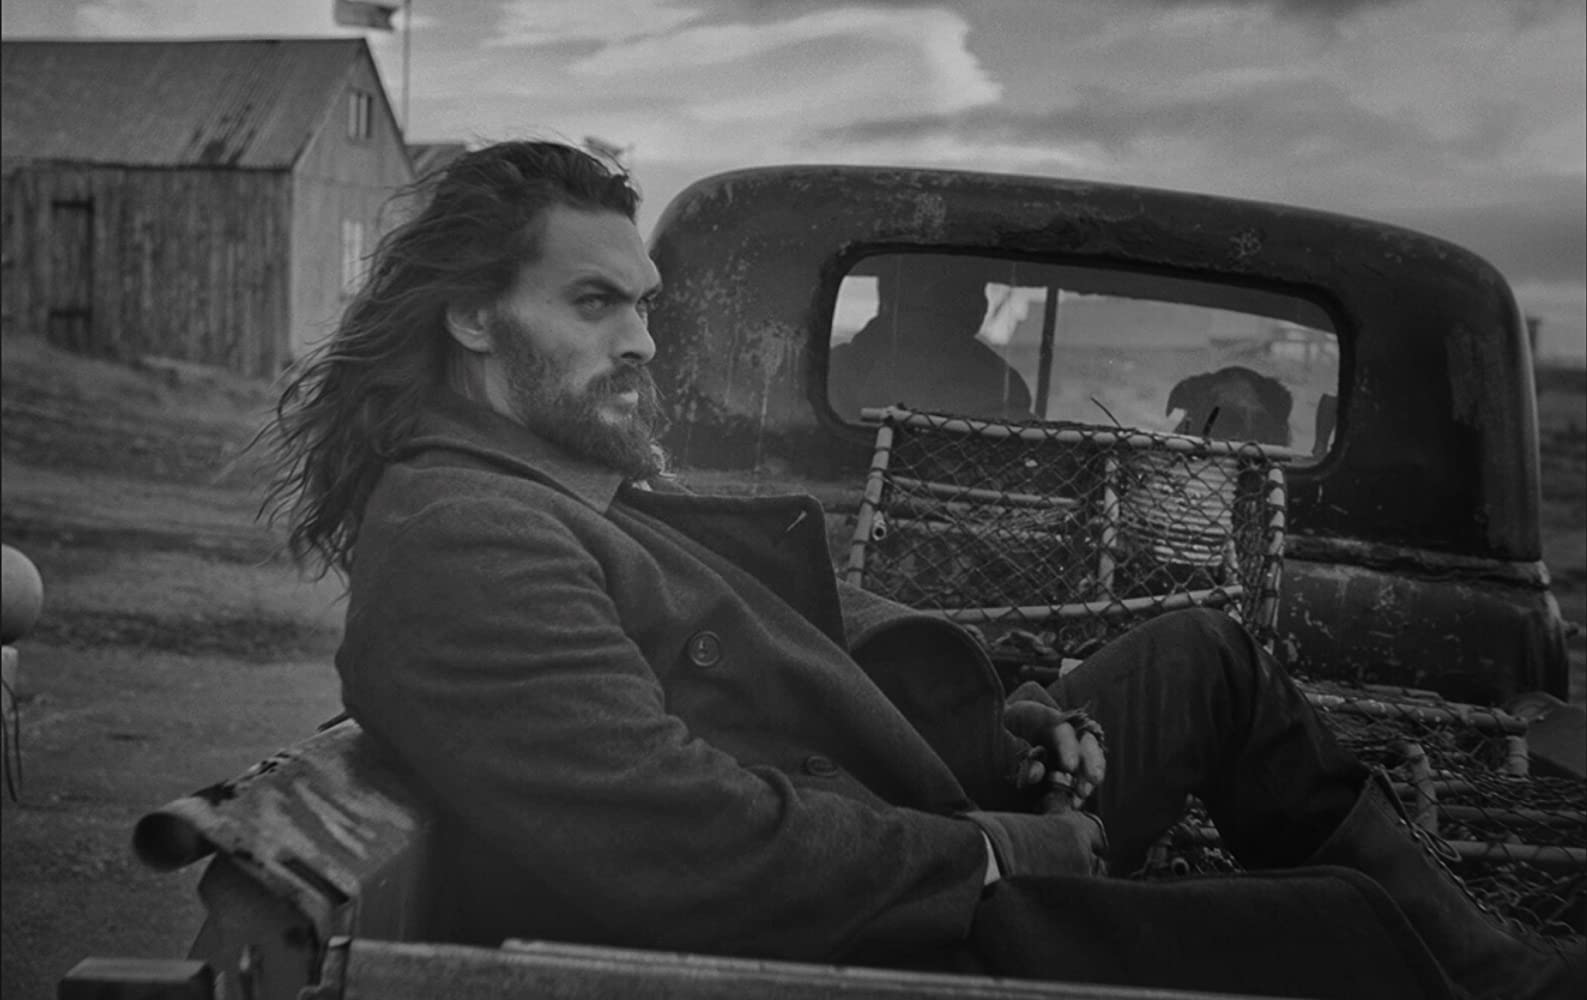 Jason Momoa in Zack Snyder's Justice League (2021)